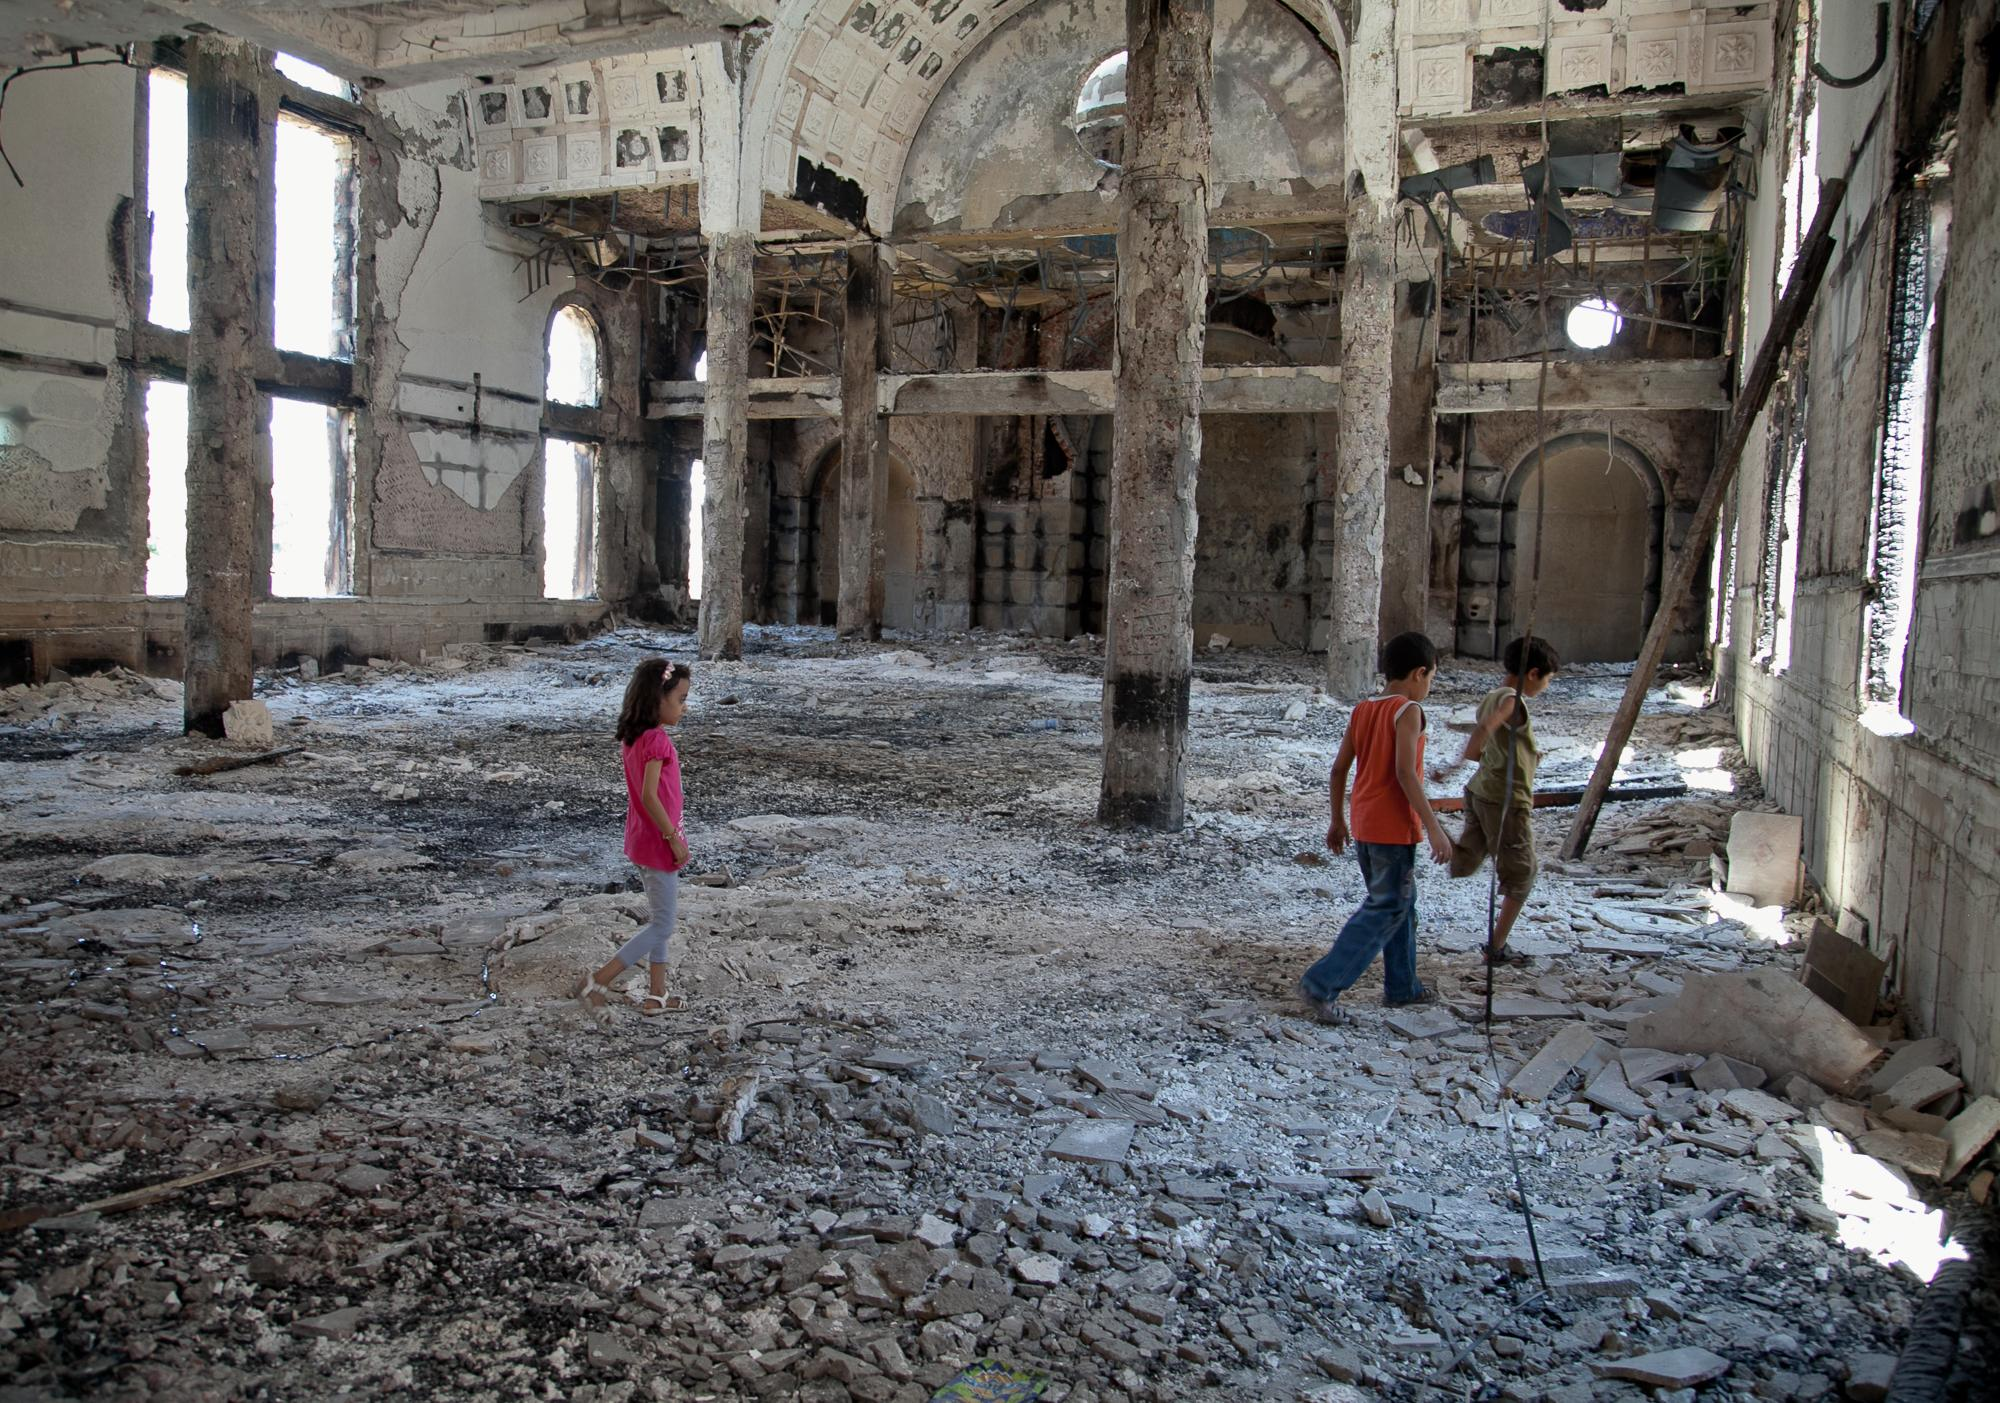 Children looking at the destruction at Al-Anba Mousa church in Minya that was attacked on August 14, 2013 by pro-Morsi supporters.